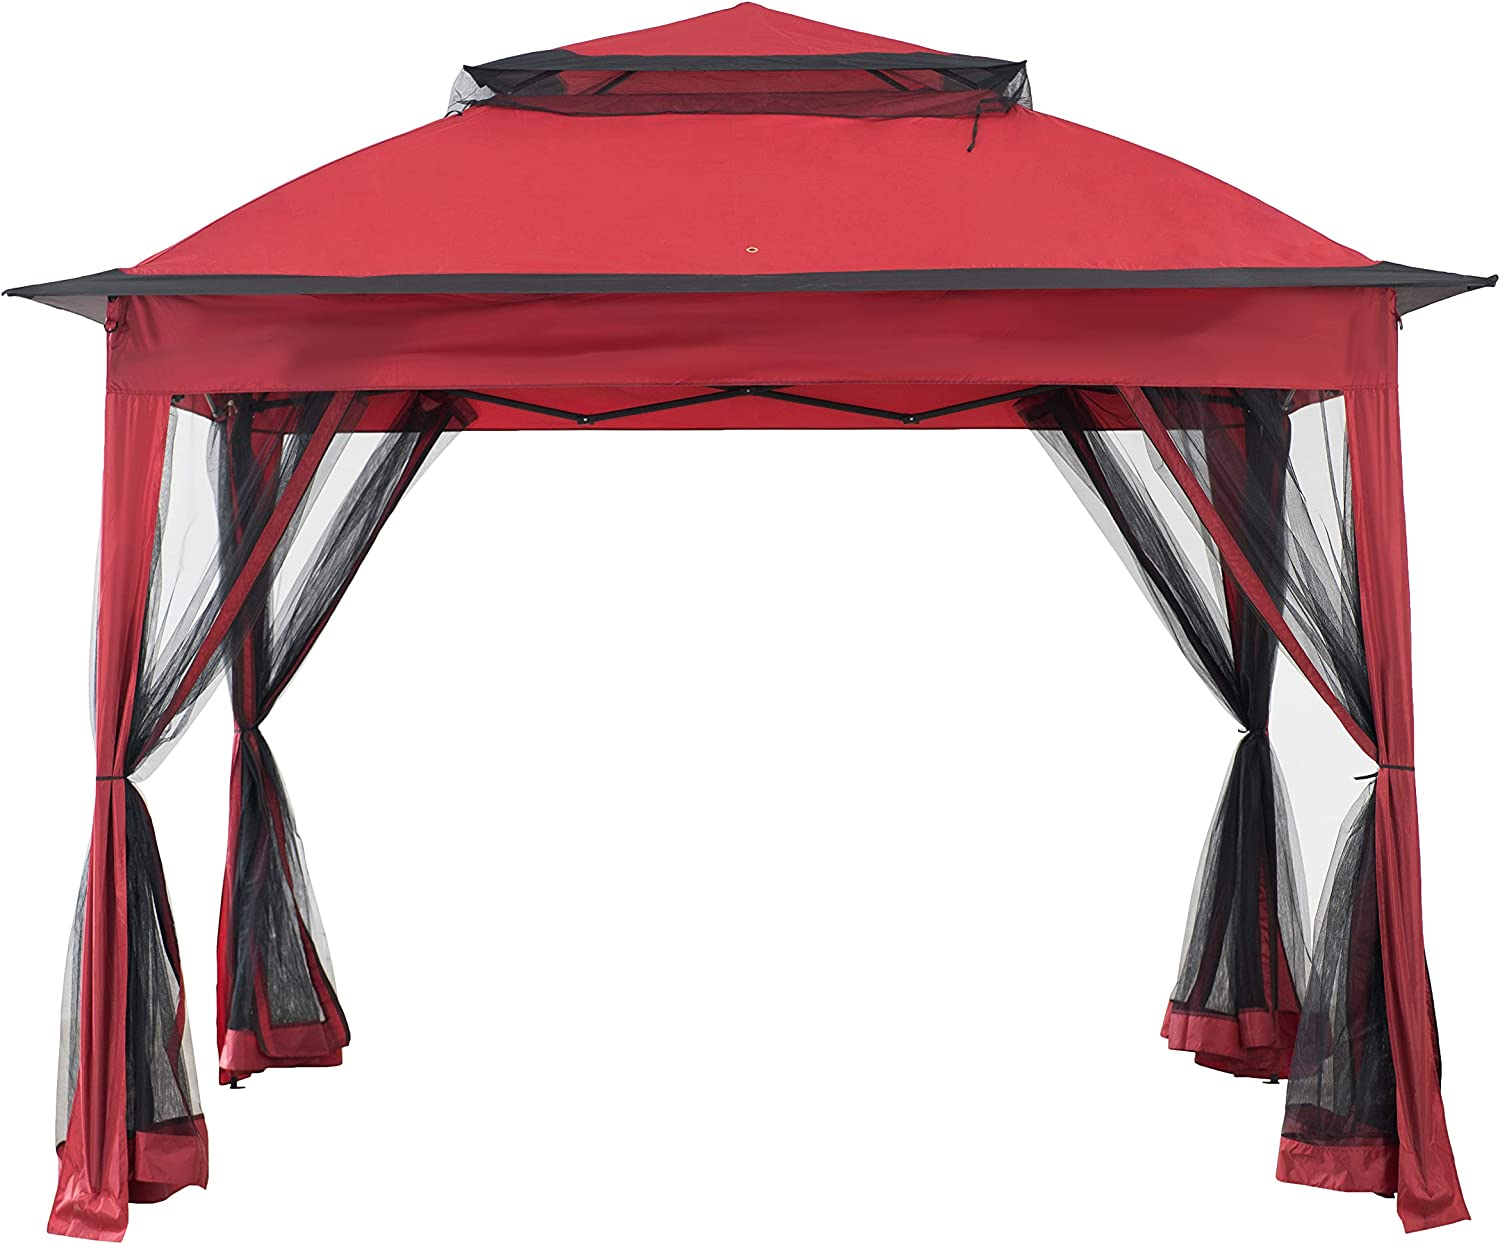 AmazonBasics Outdoor Patio Garden Pop Up Gazebo with Mosquito Net - Terra Cotta Red